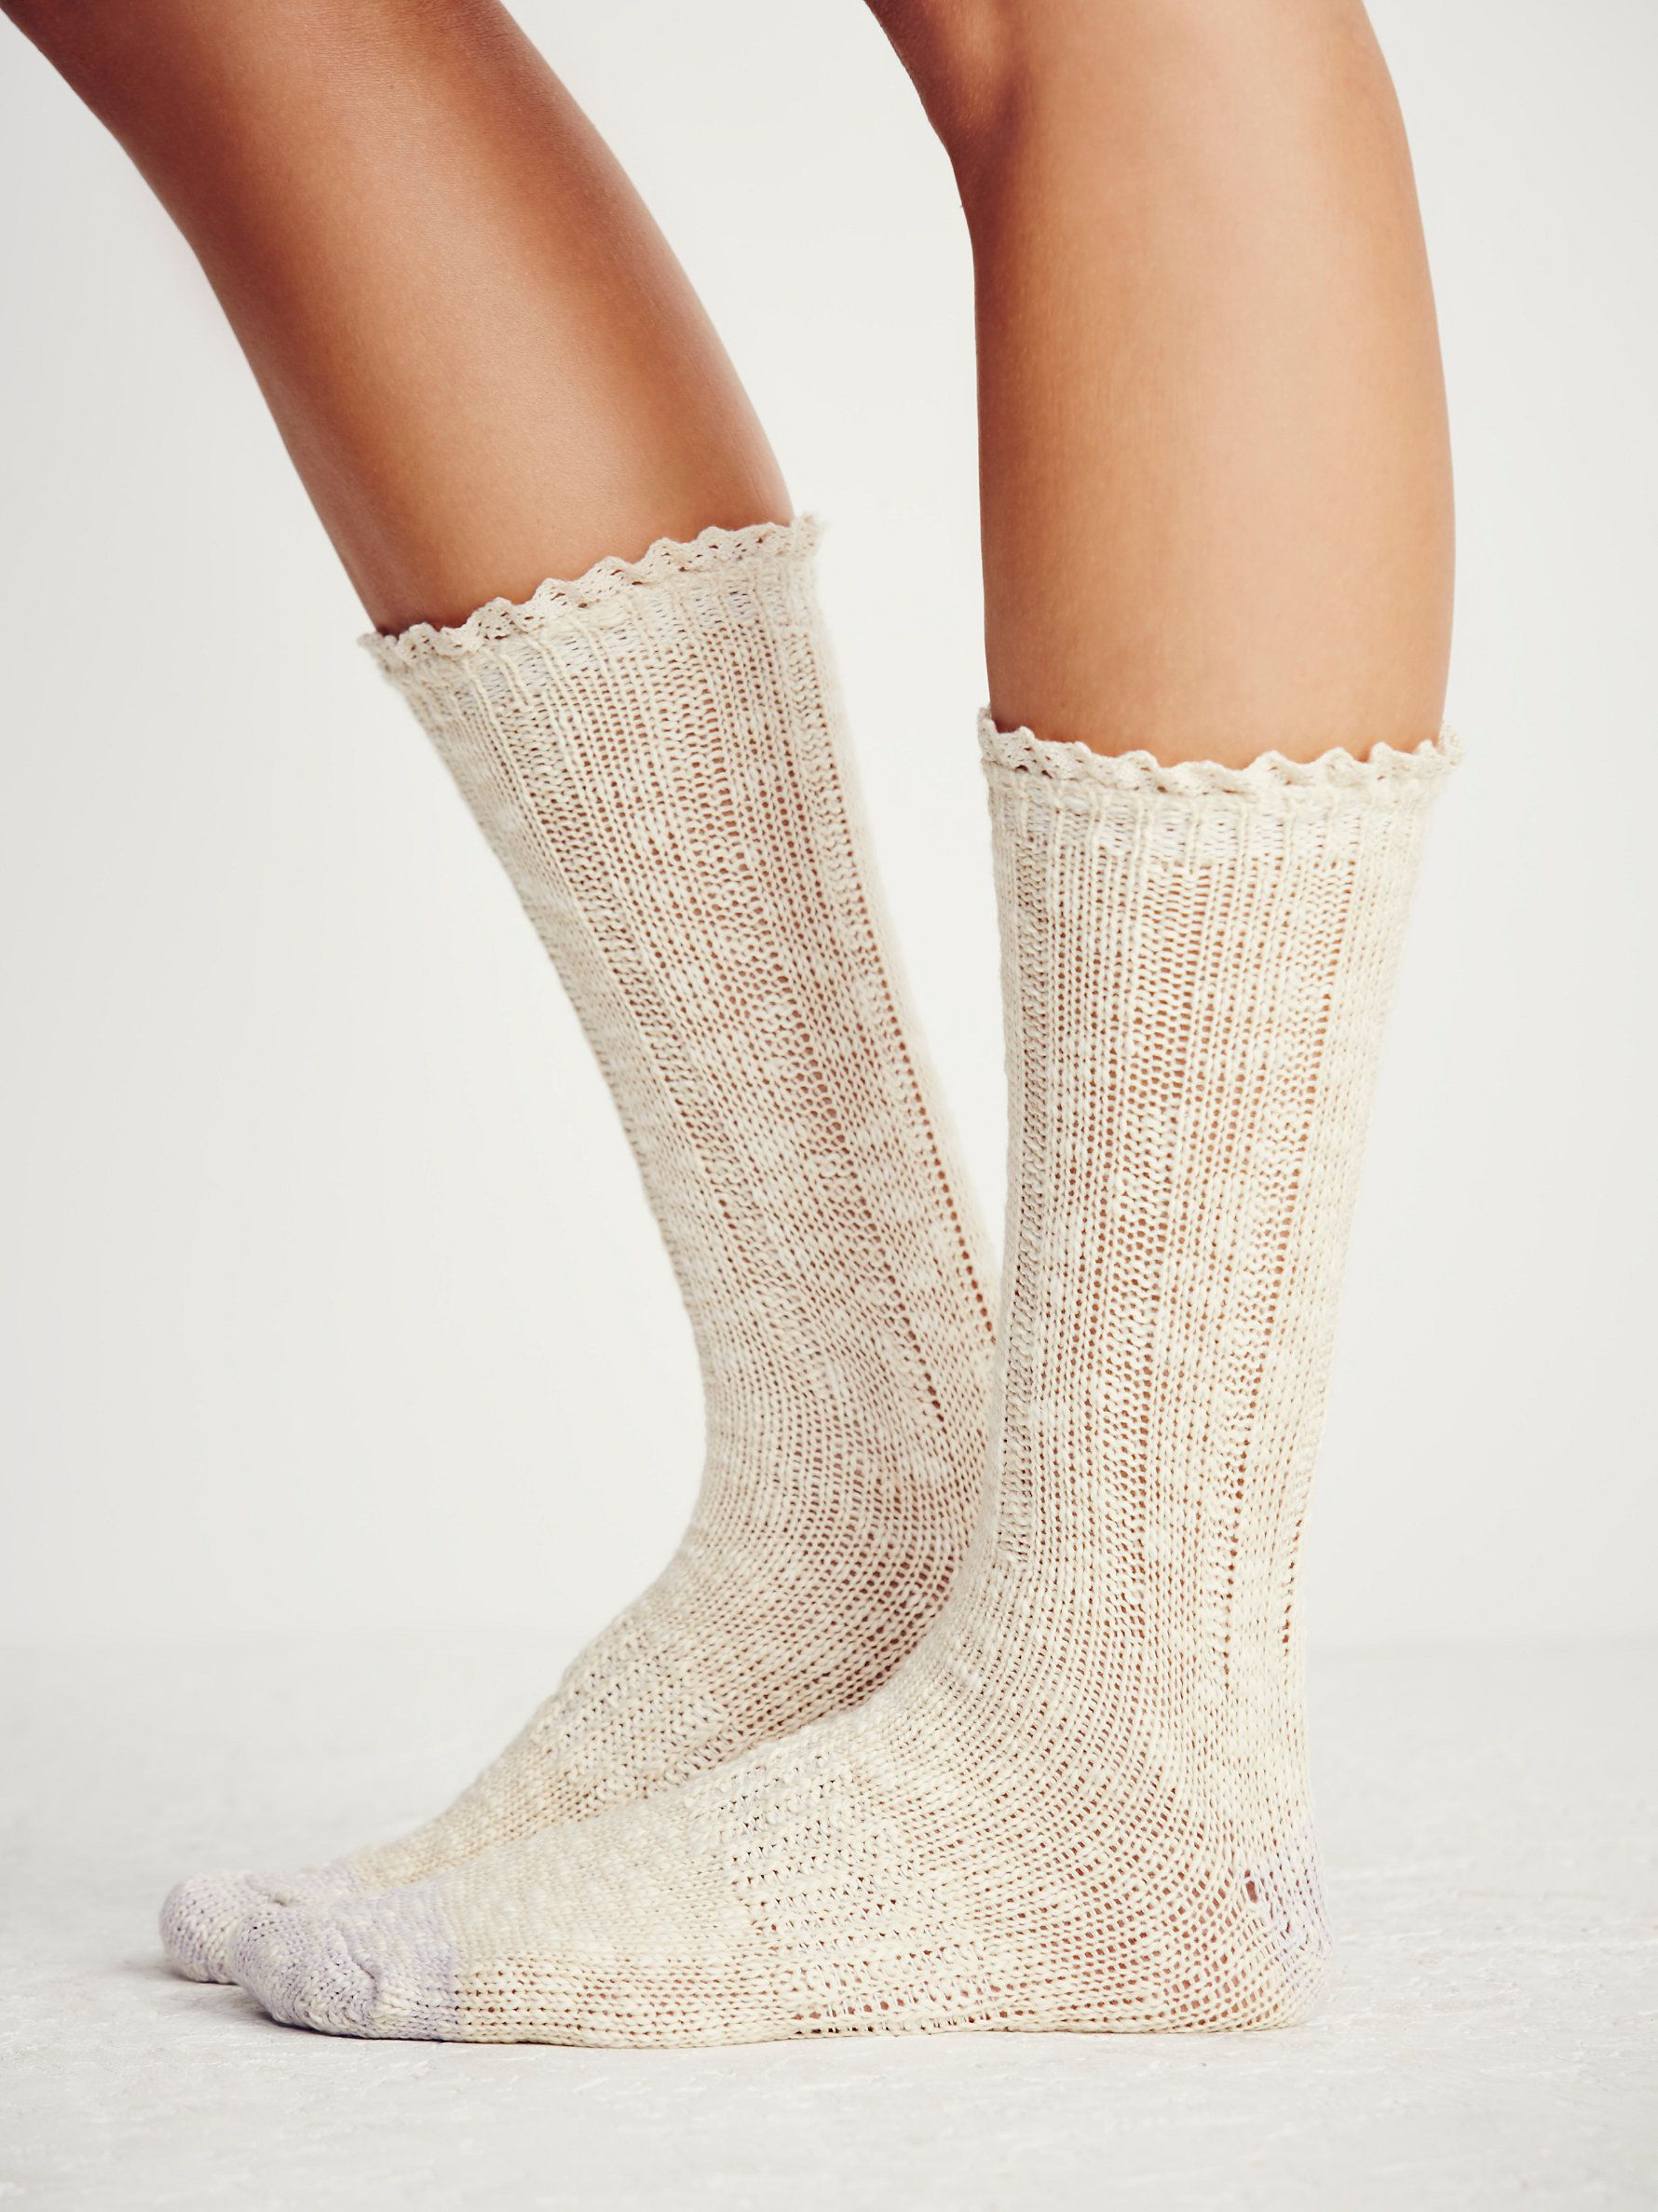 Melbourne Heathered Crew Socks | Tomboy meets femme with these thick heathered crew socks that hit at the mid-calf. A pretty and subtle ruffled detail decorates the top hem. Colored accents at heel and toe.